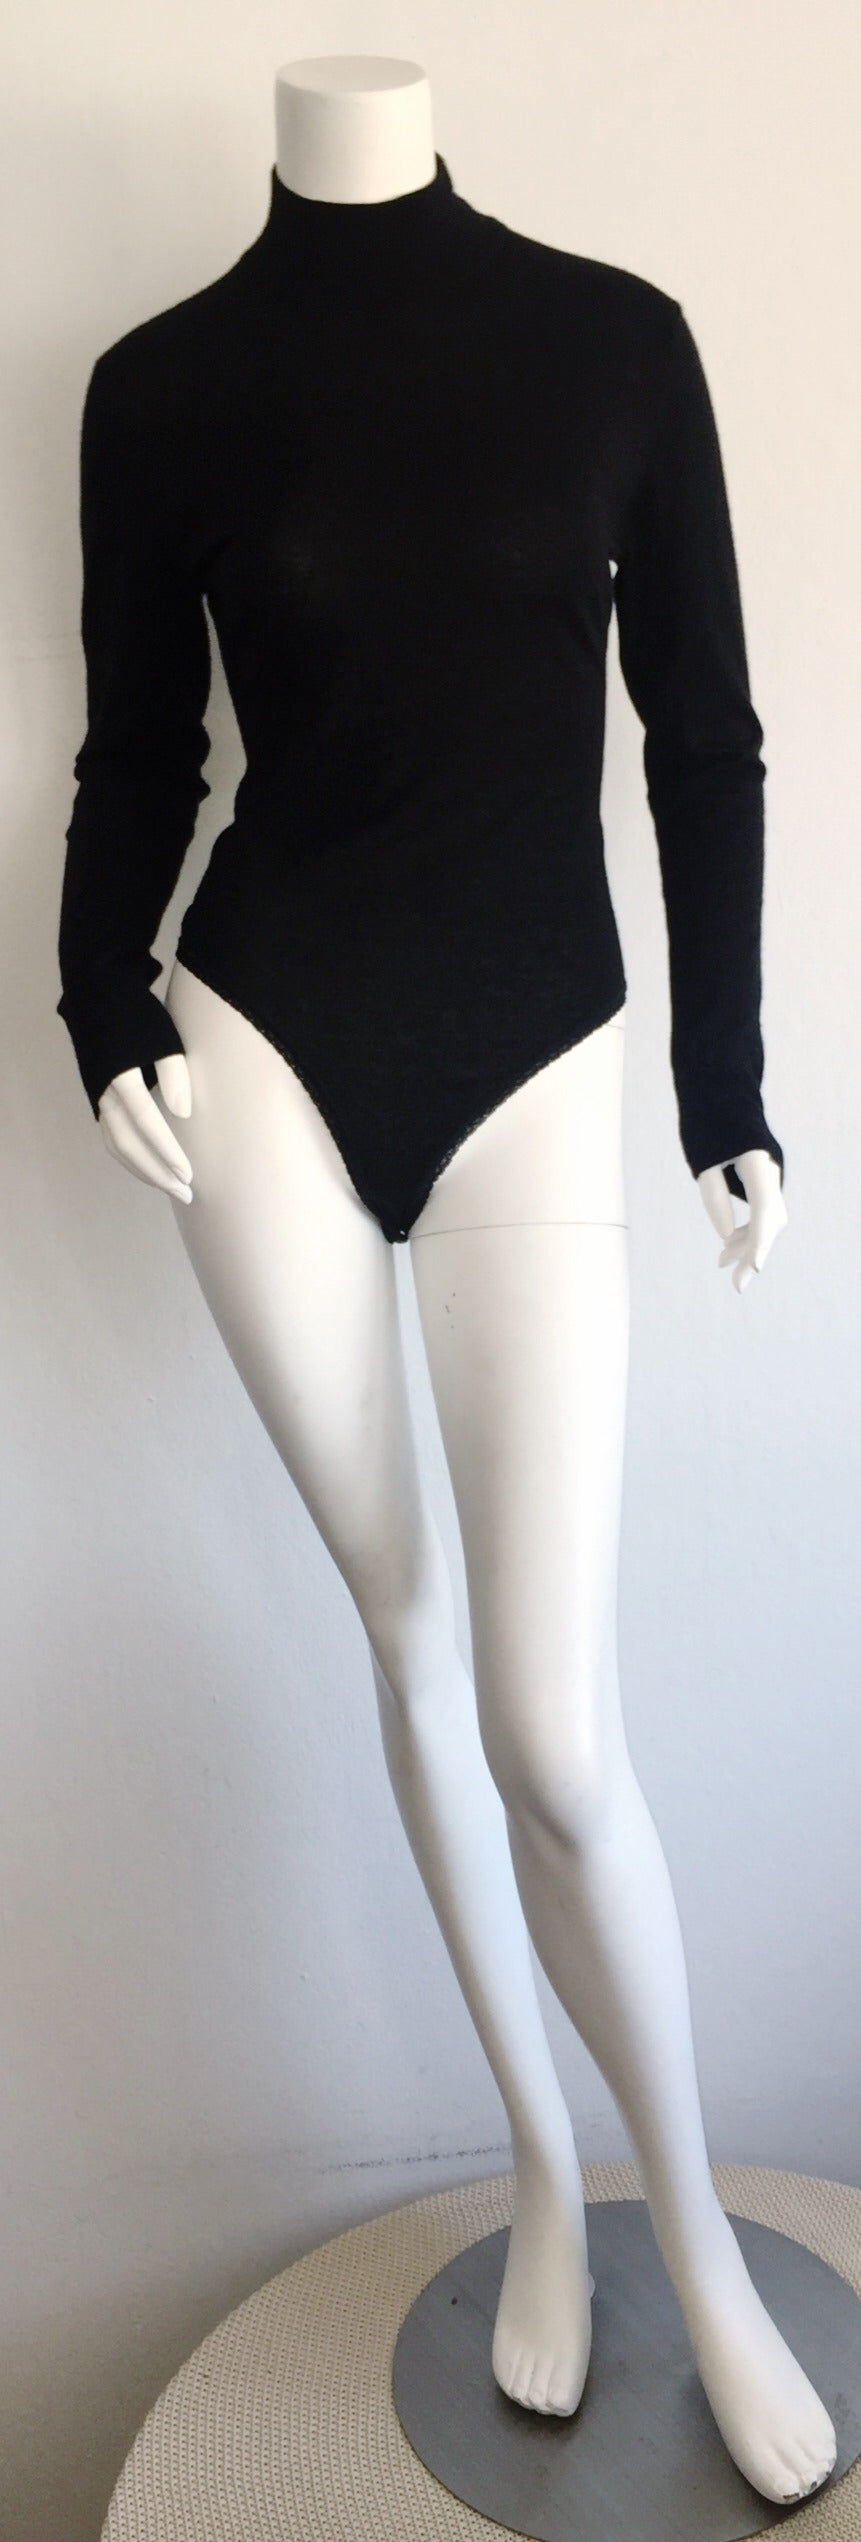 Sexy vintage Donna Karan cashmere bodysuit! Jet black color. Softest imaginable cashmere, with a beautiful silhouette! Perfect for the office, with jeans, or a skirt. Easily transitions from day to night. In great condition. Made in Italy.